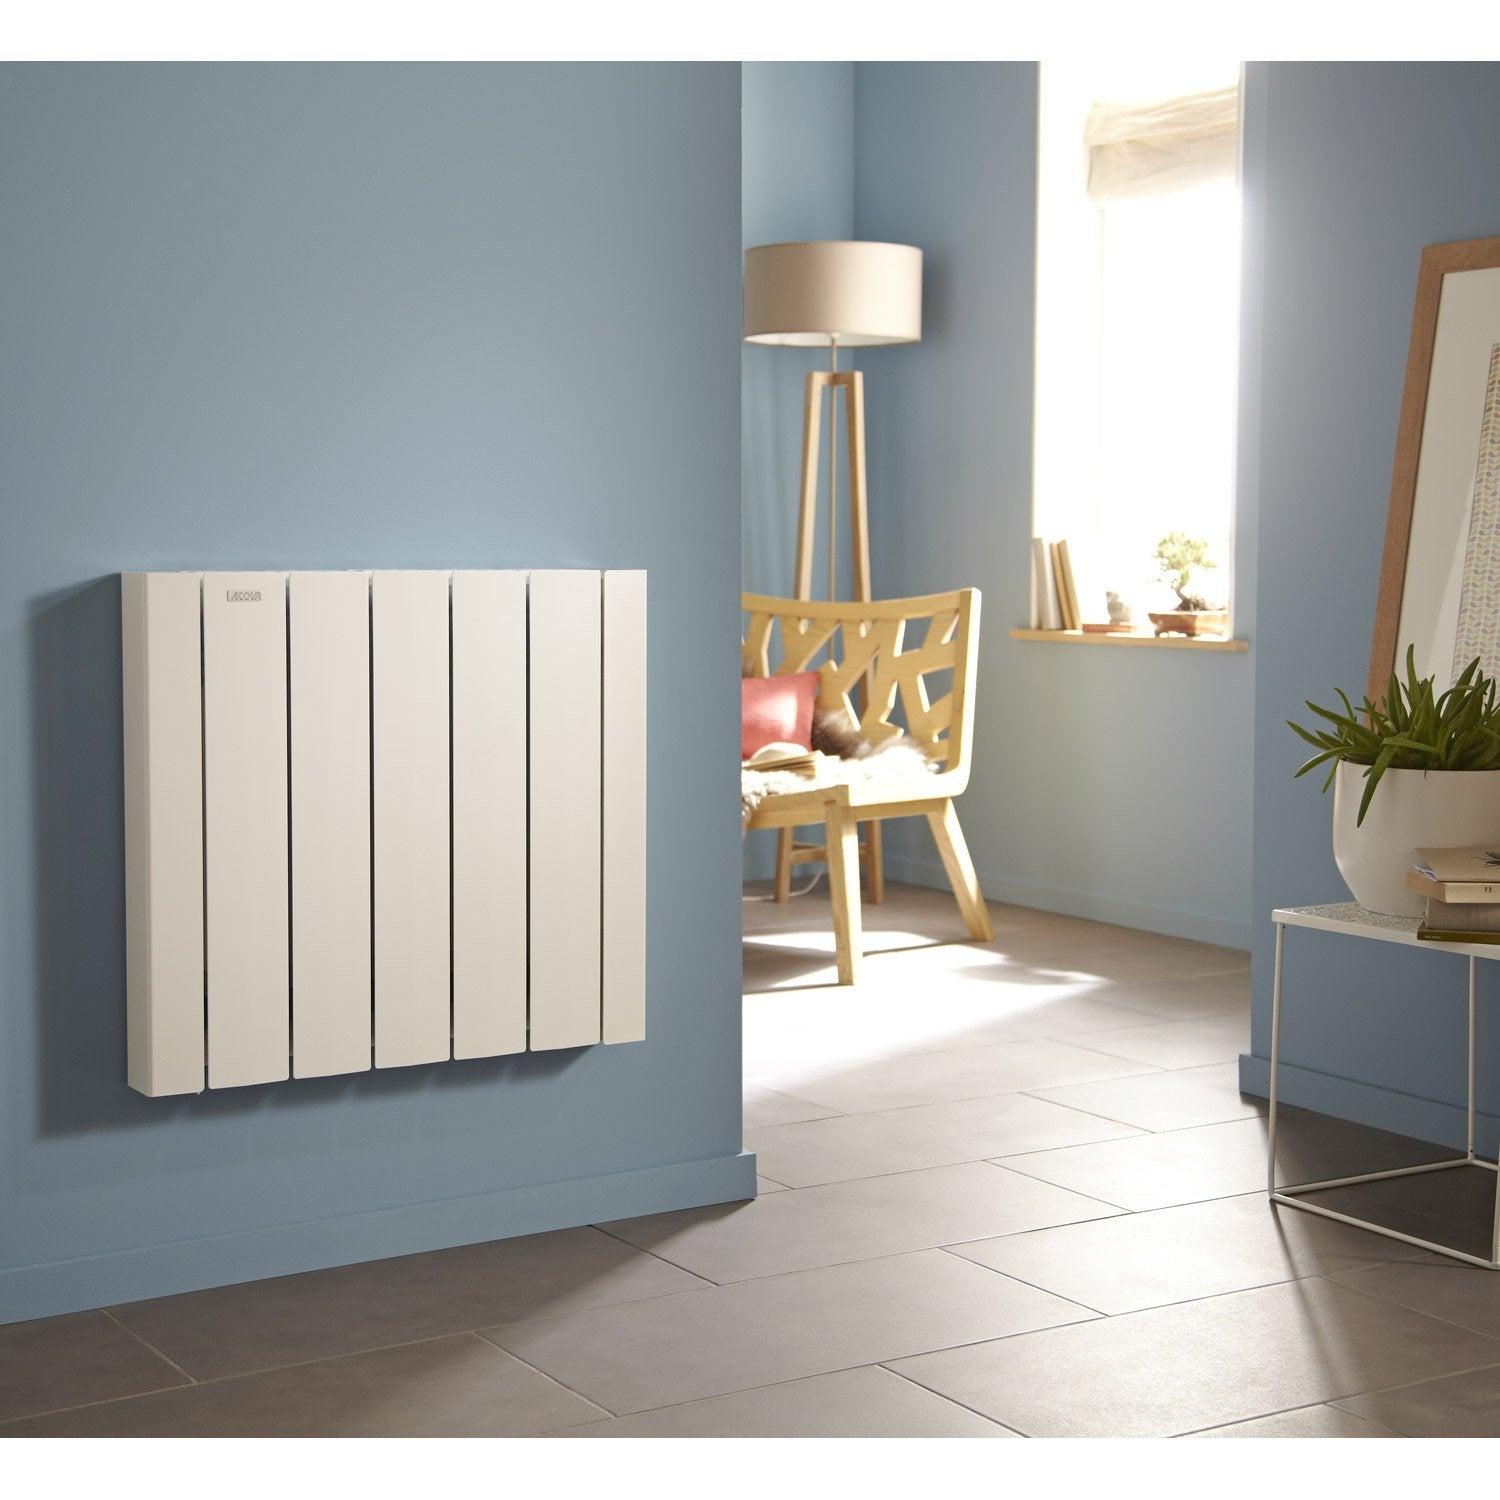 radiateur lectrique inertie fluide acova mohair lcd 750 w leroy merlin. Black Bedroom Furniture Sets. Home Design Ideas